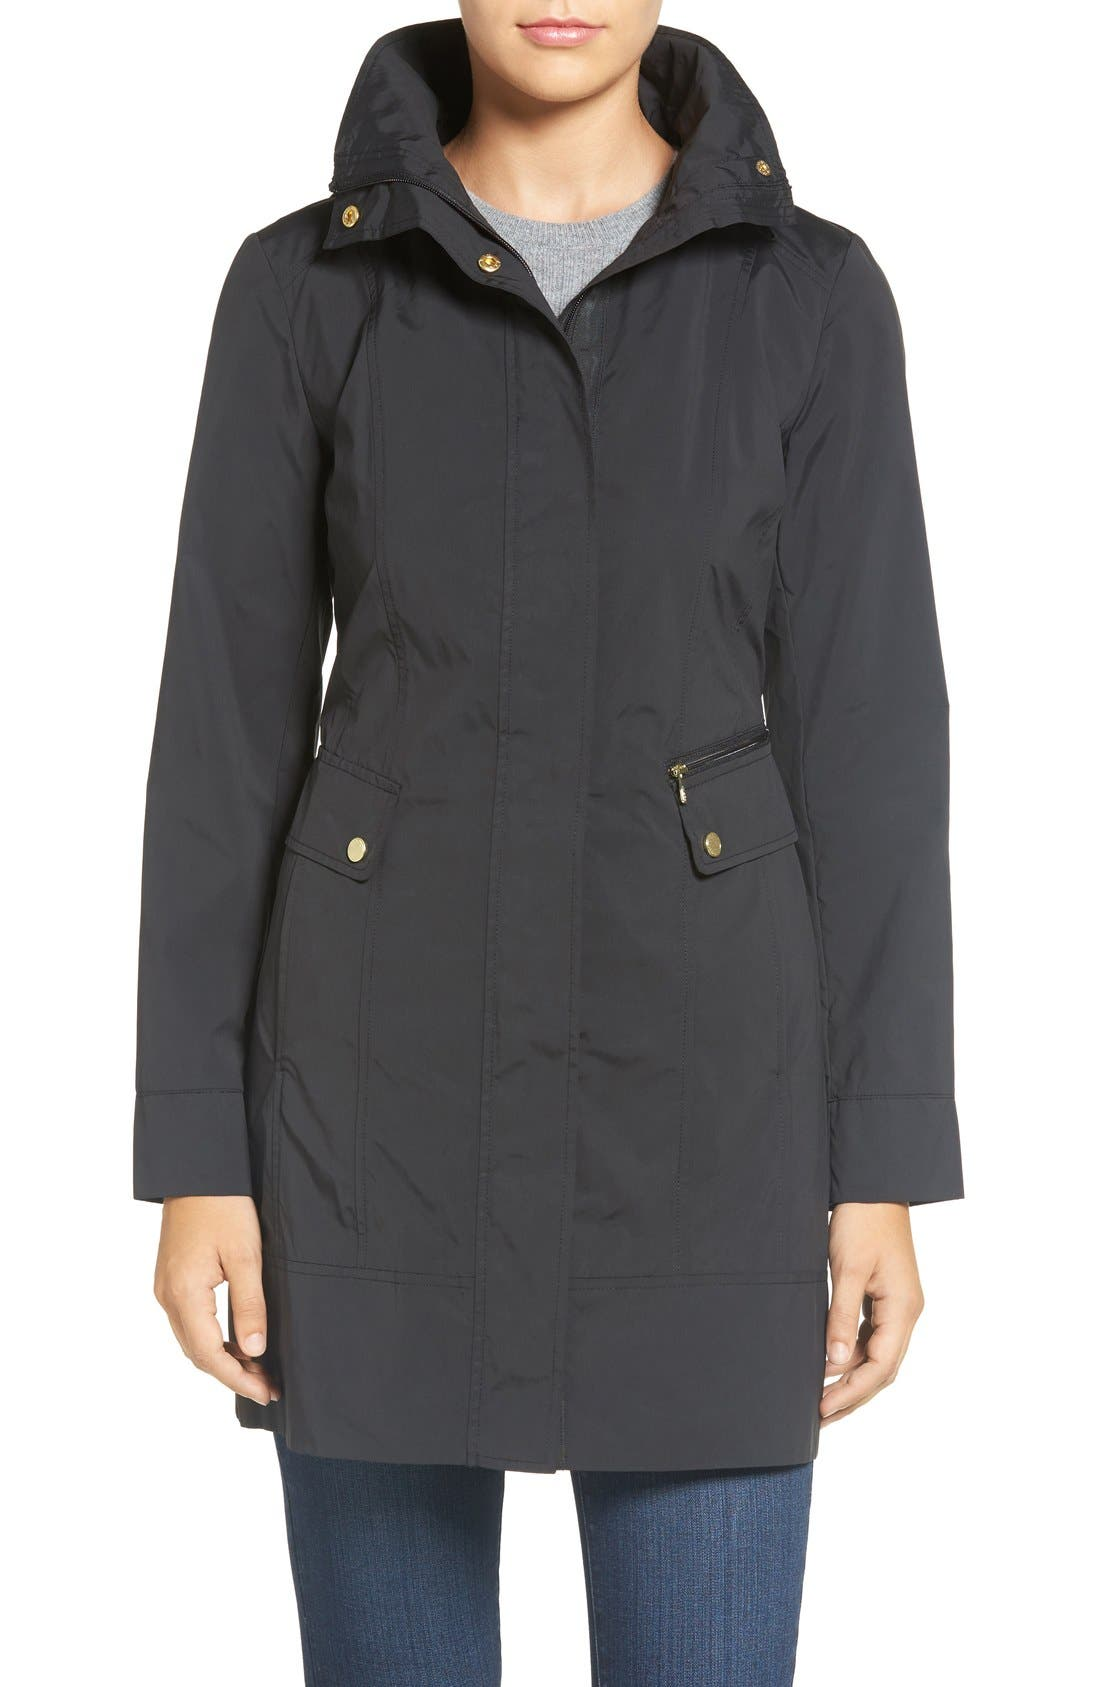 Cole Haan Signature Back Bow Packable Hooded Raincoat, Black